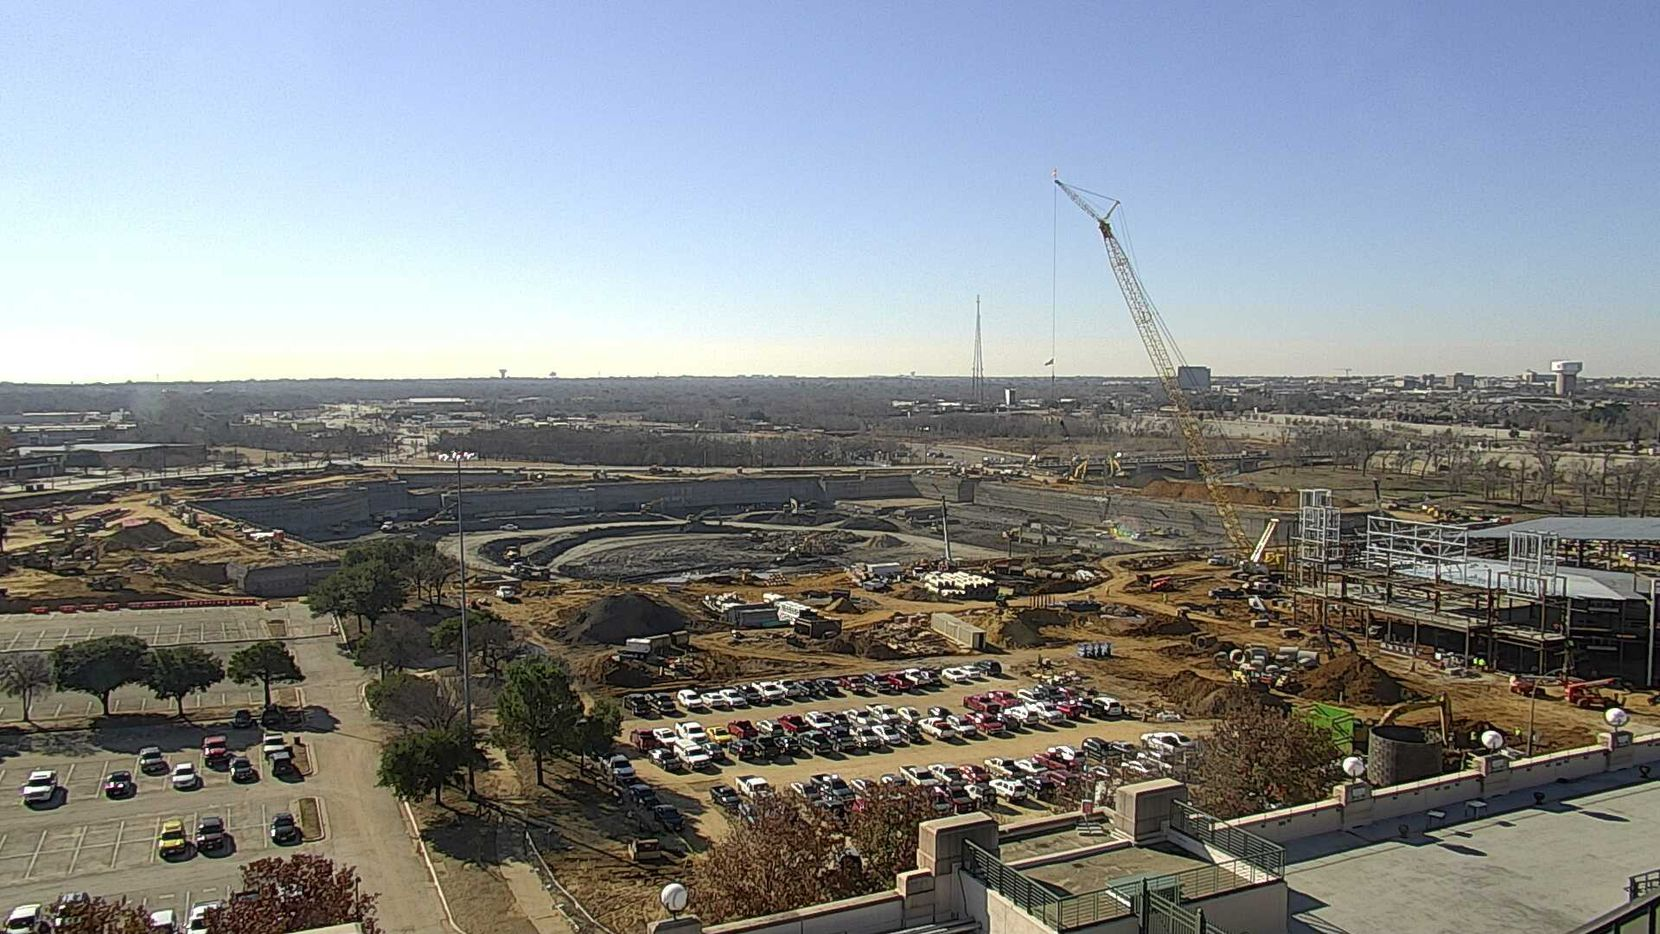 Here's the latest construction image taken Jan. 3 near the site of construction at Globe Life Field. The Rangers have gone online with a webcam so fans can see time-lapse images as the team's $1.1 billion stadium goes up.